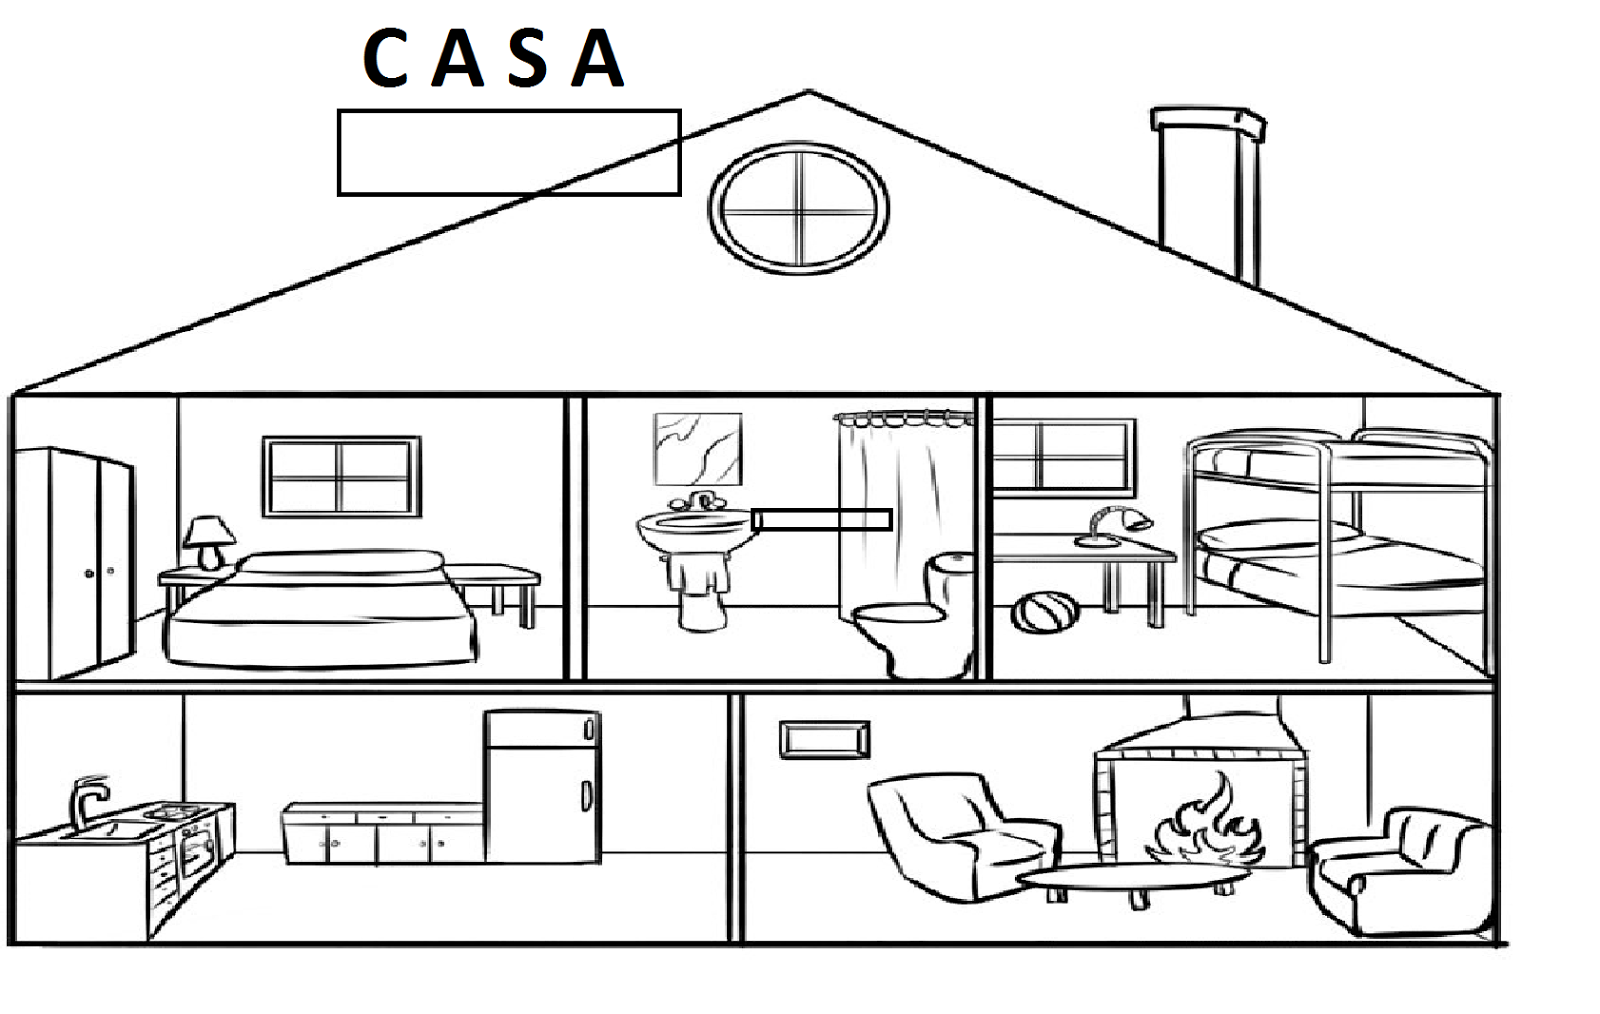 Dependencias de la casa para colorear - Imagui